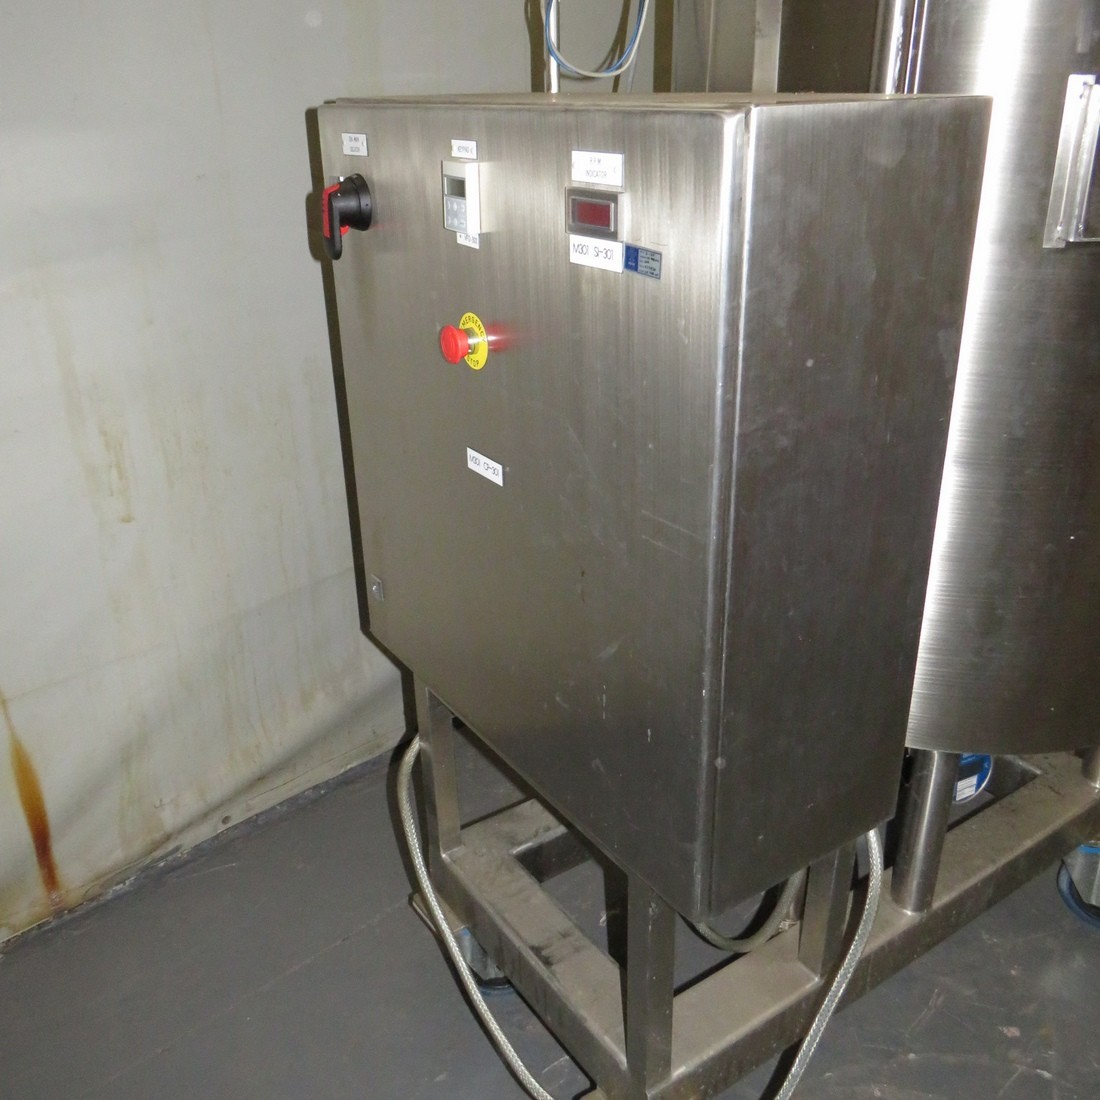 R6MA6164 Stainless steel BCD ENGINEERING GROUPE Mixing tank - 423 liters